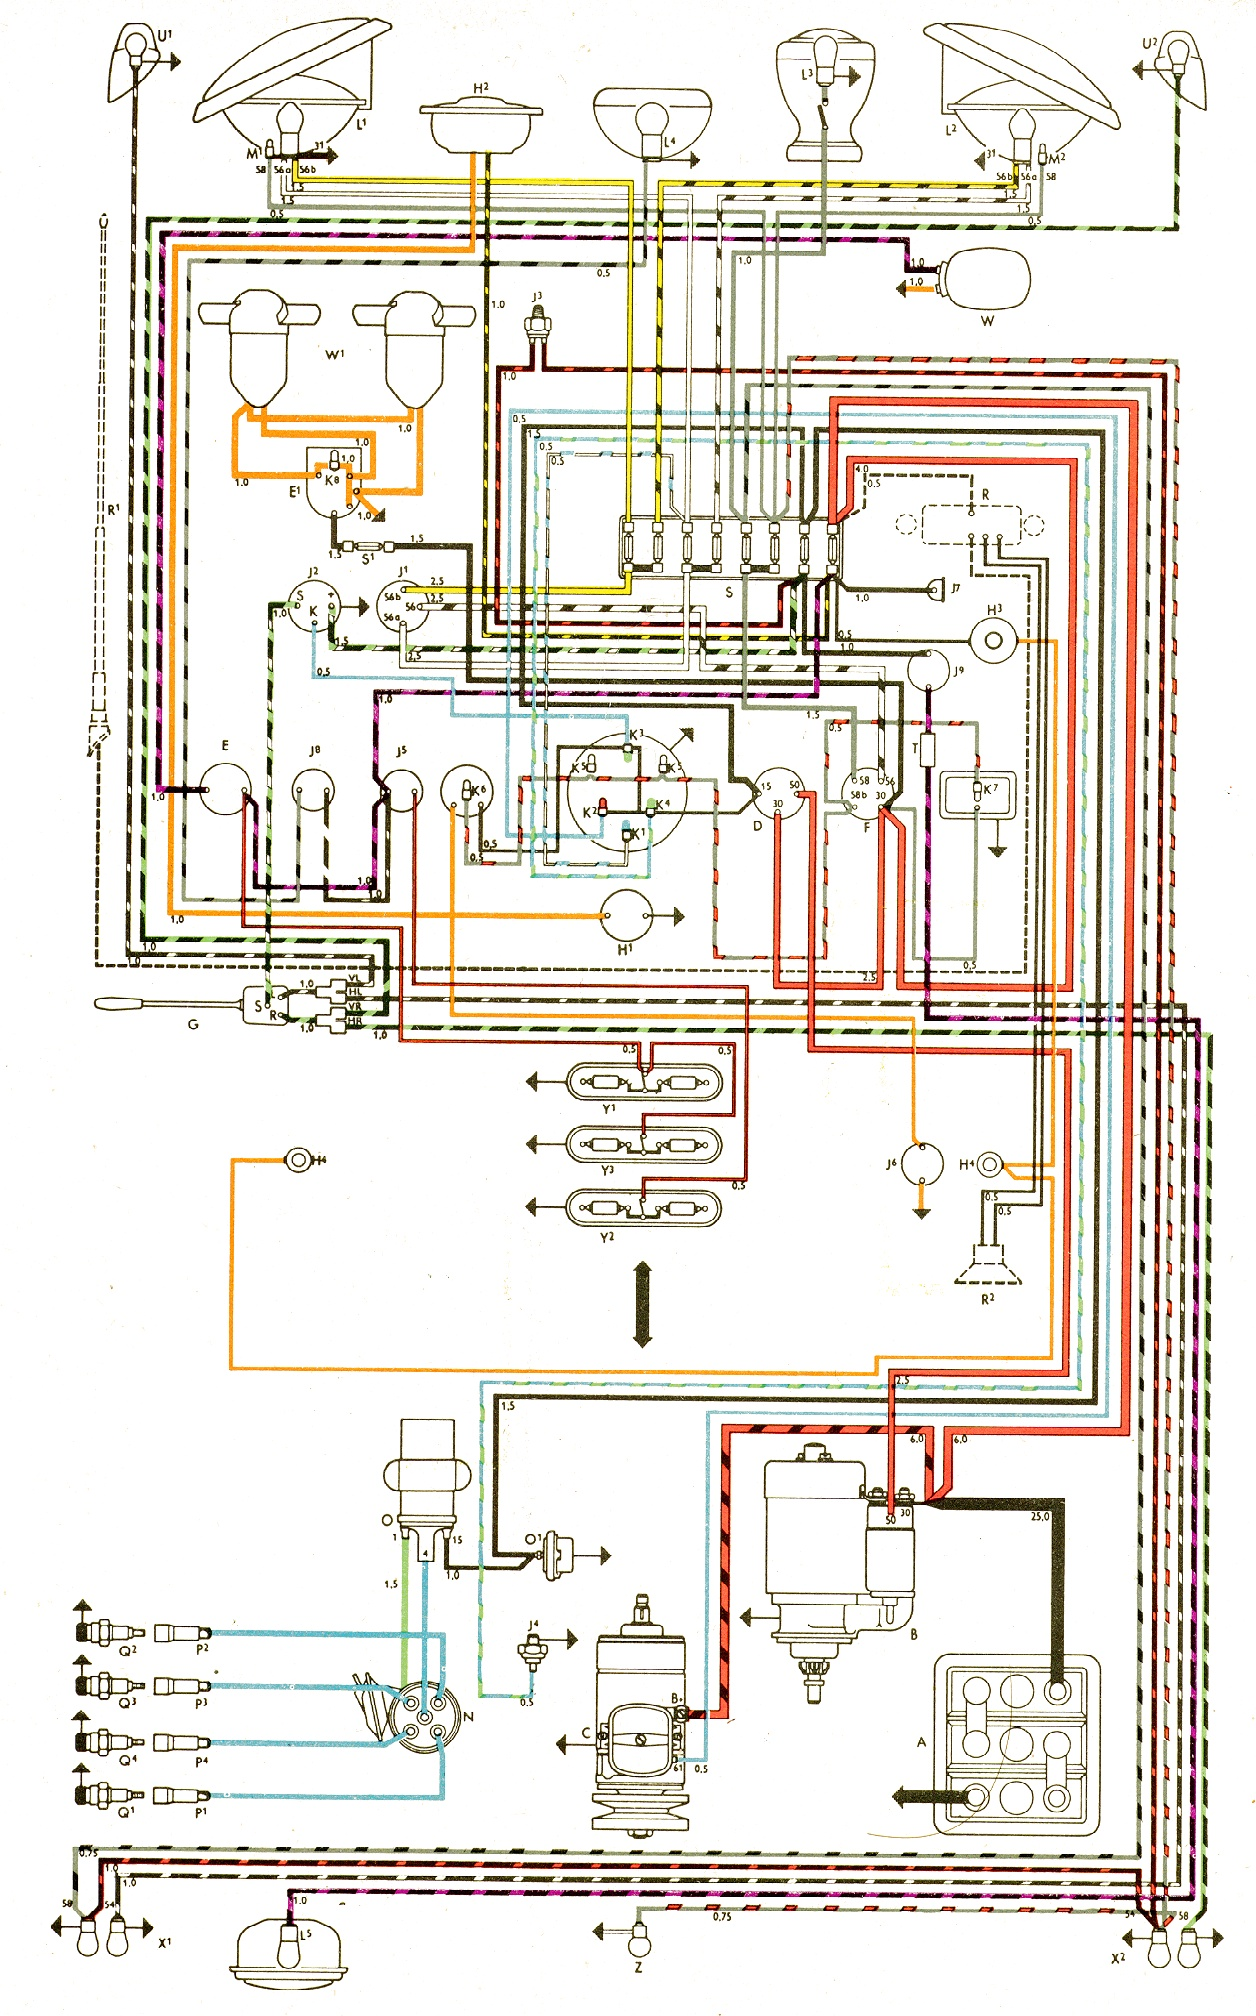 Wiring Diagram For Vw Beetle